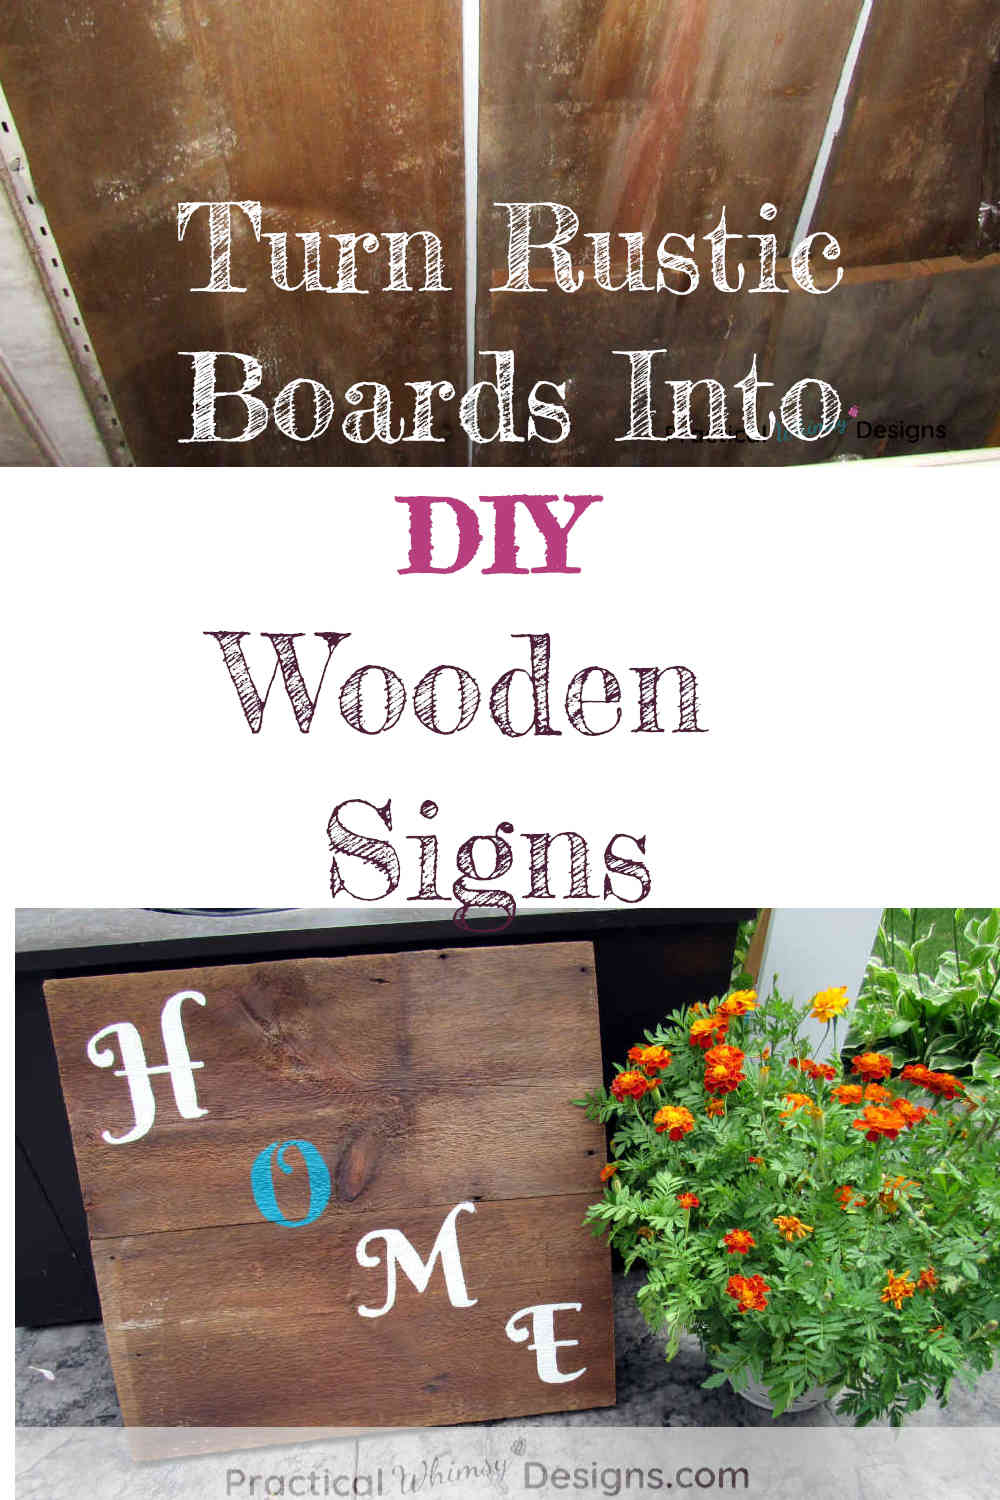 Turn rustic boards into DIY Wooden signs, image of barn boards and rustic home sign with flowers.